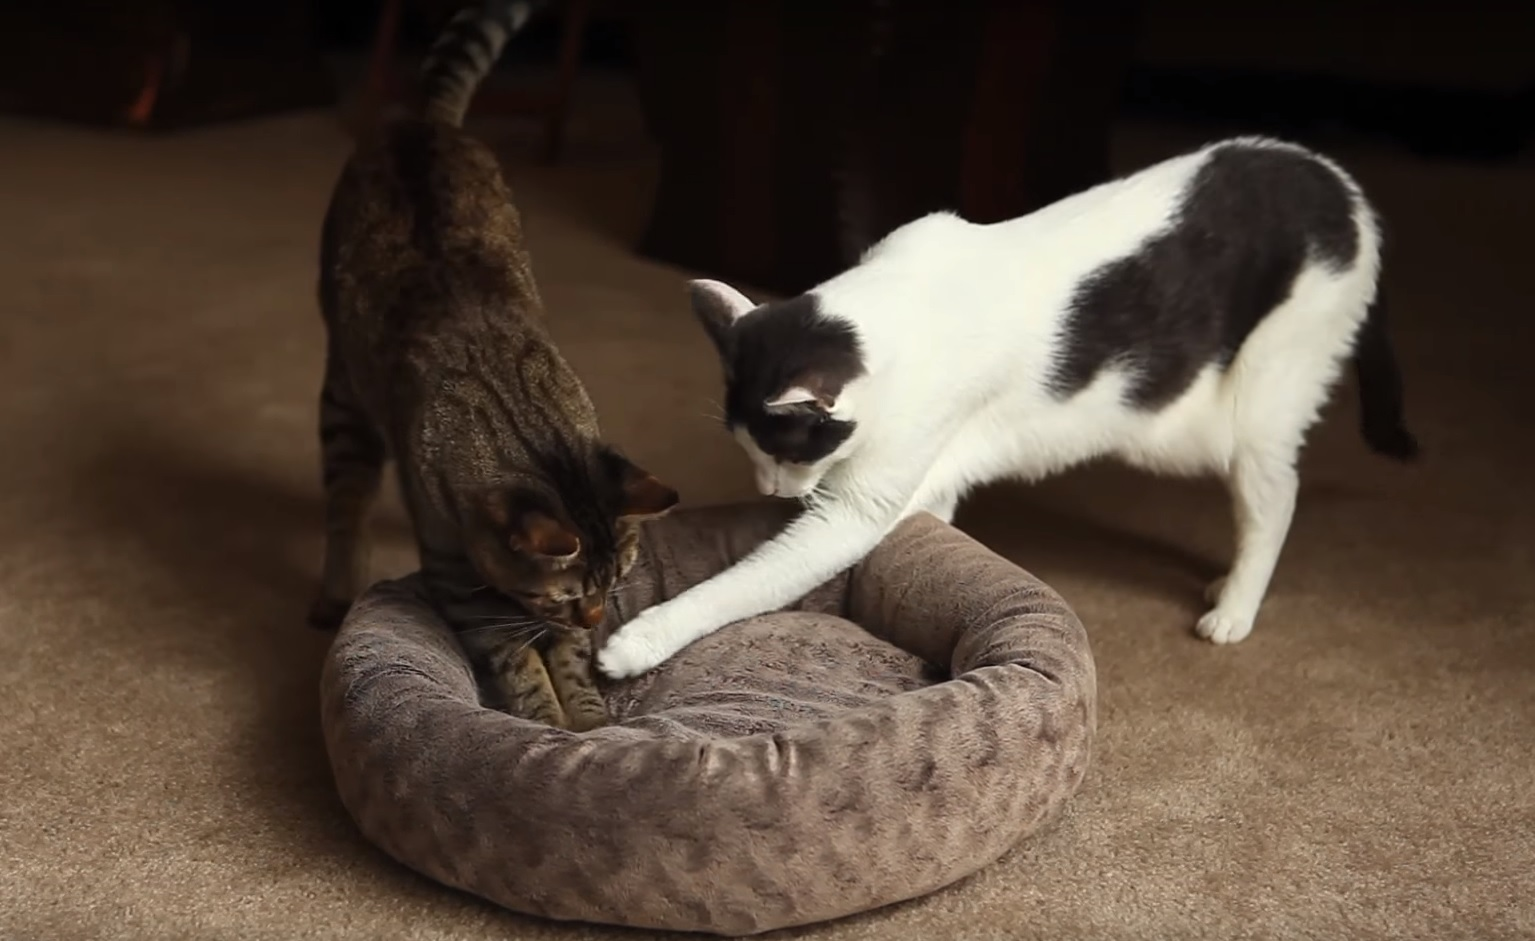 Funny and cute compilation of Loki and Sparta (The Mean Kitty)